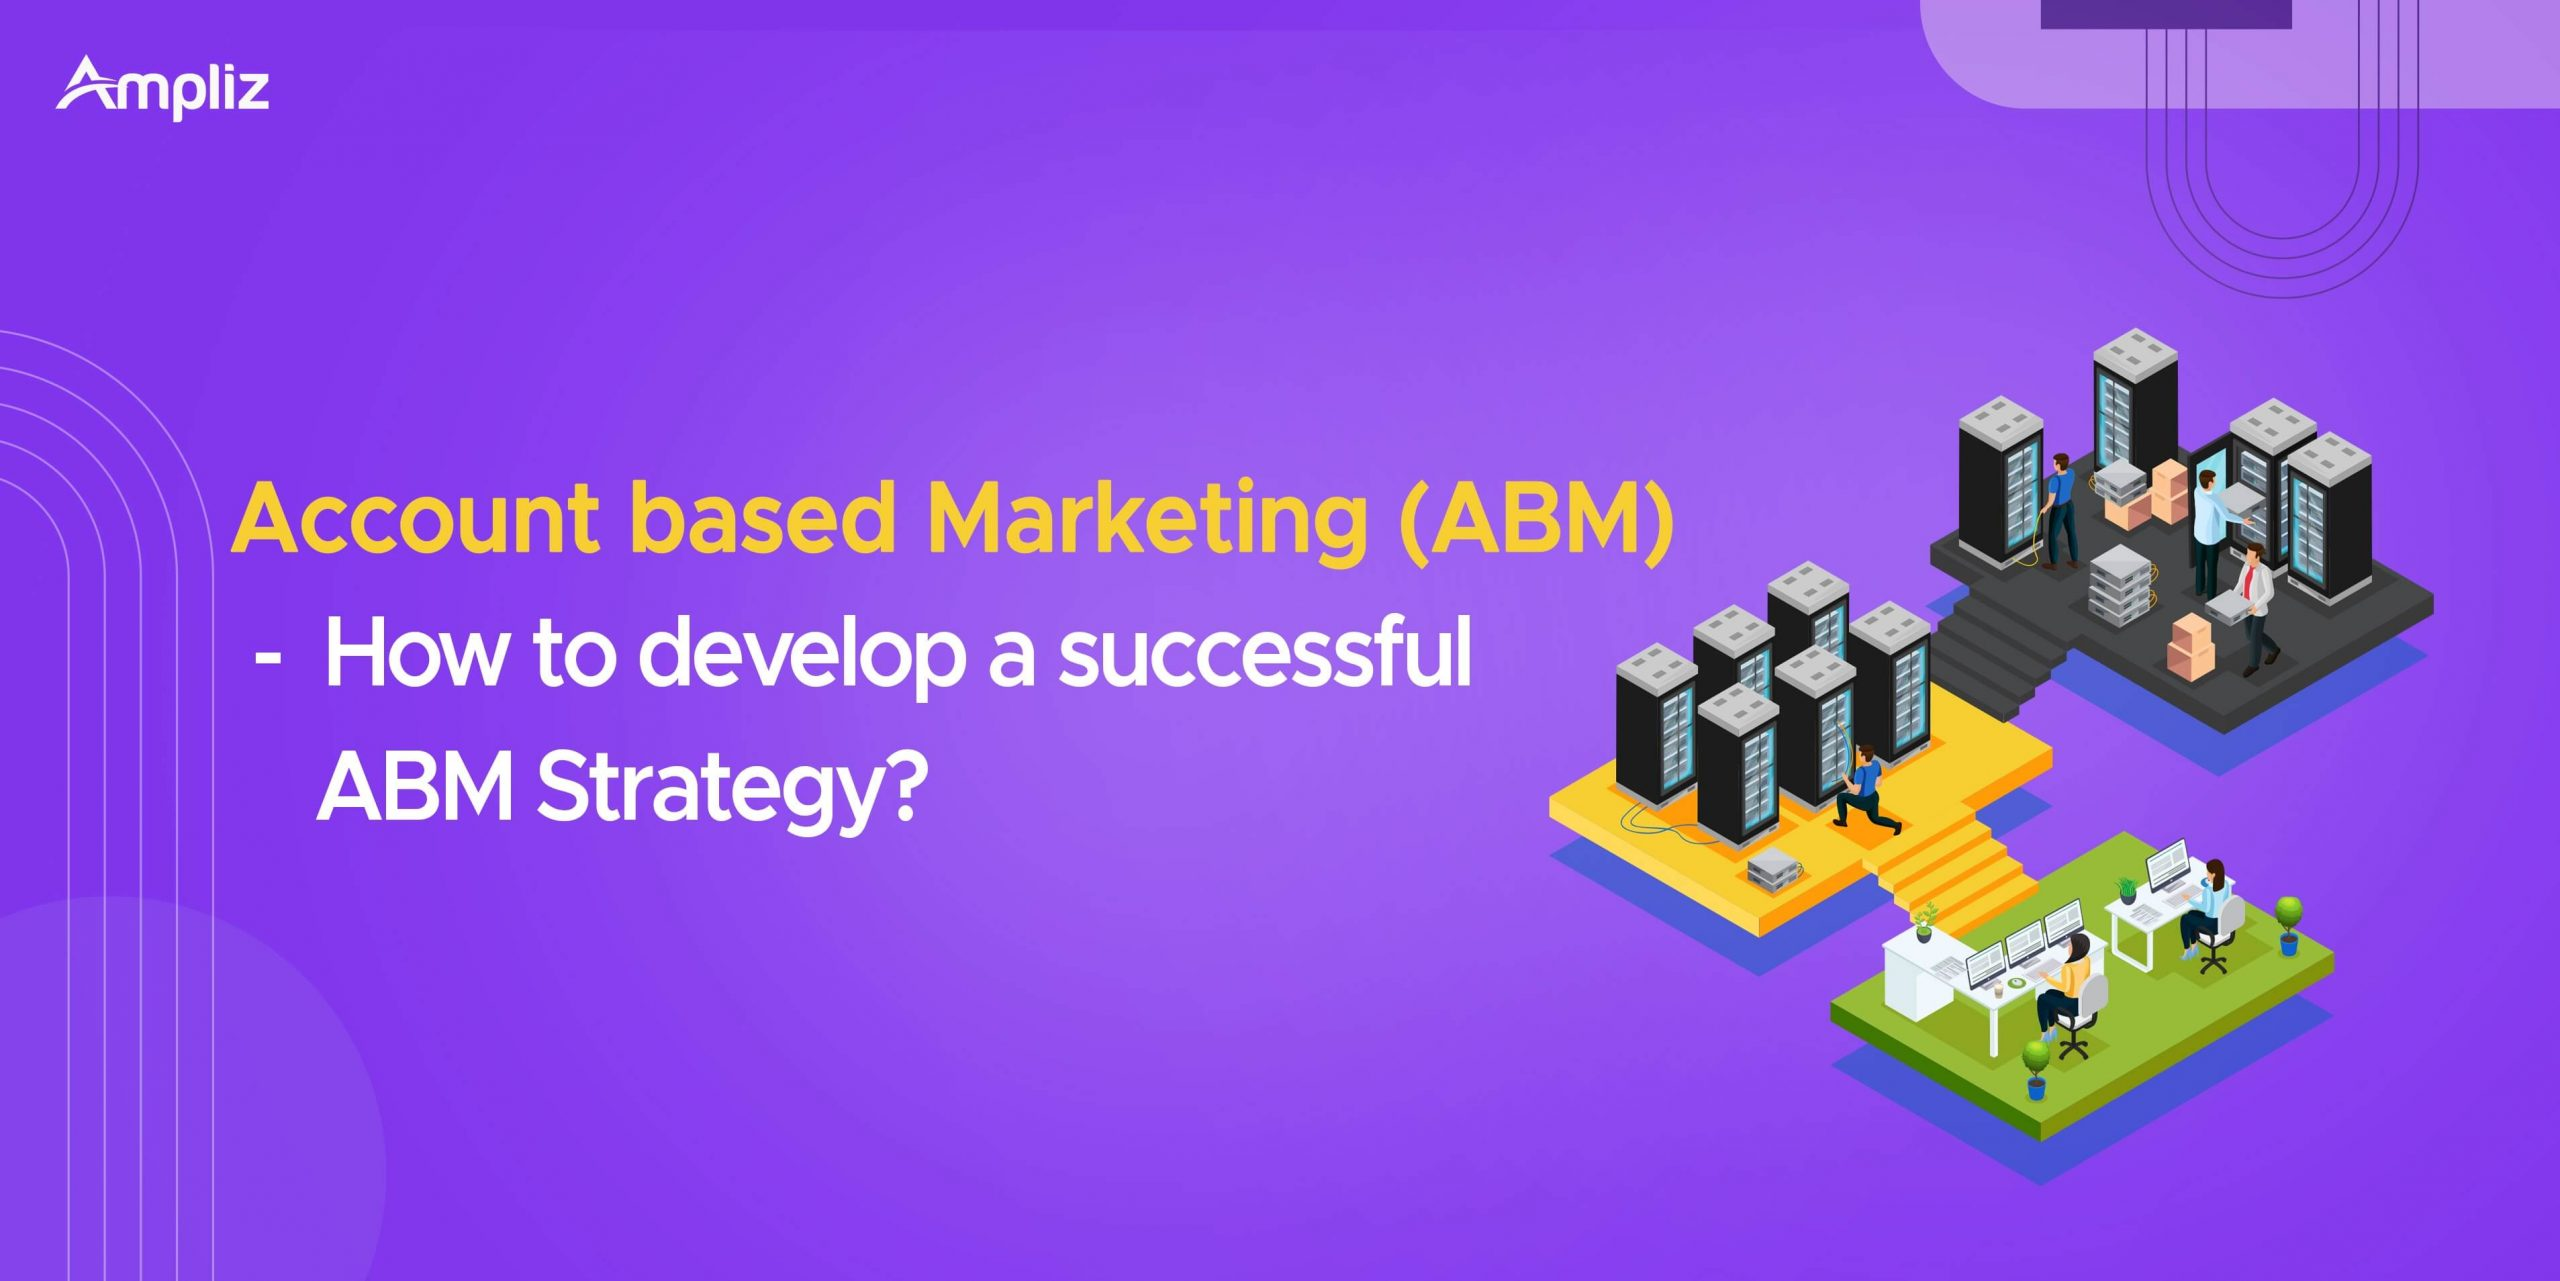 What is account based marketing? (abm)